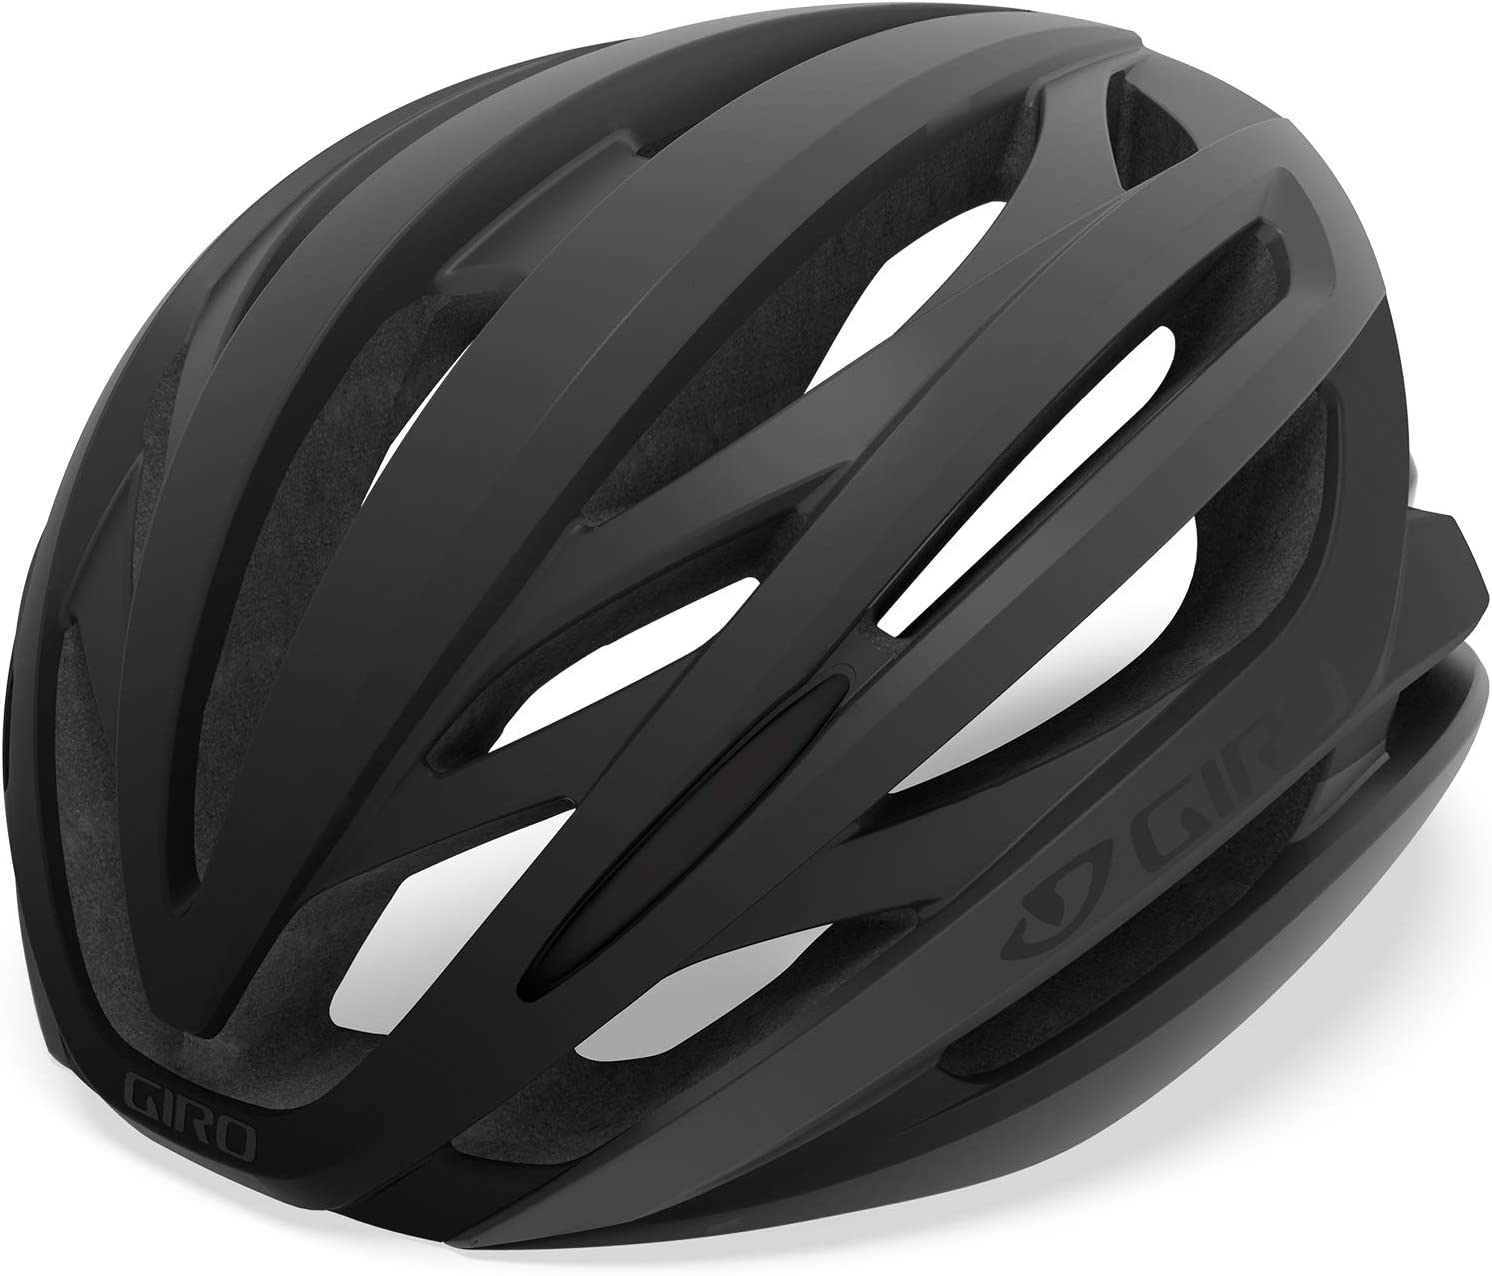 Giro Syntax MIPS Adult Road Cycling Helmet